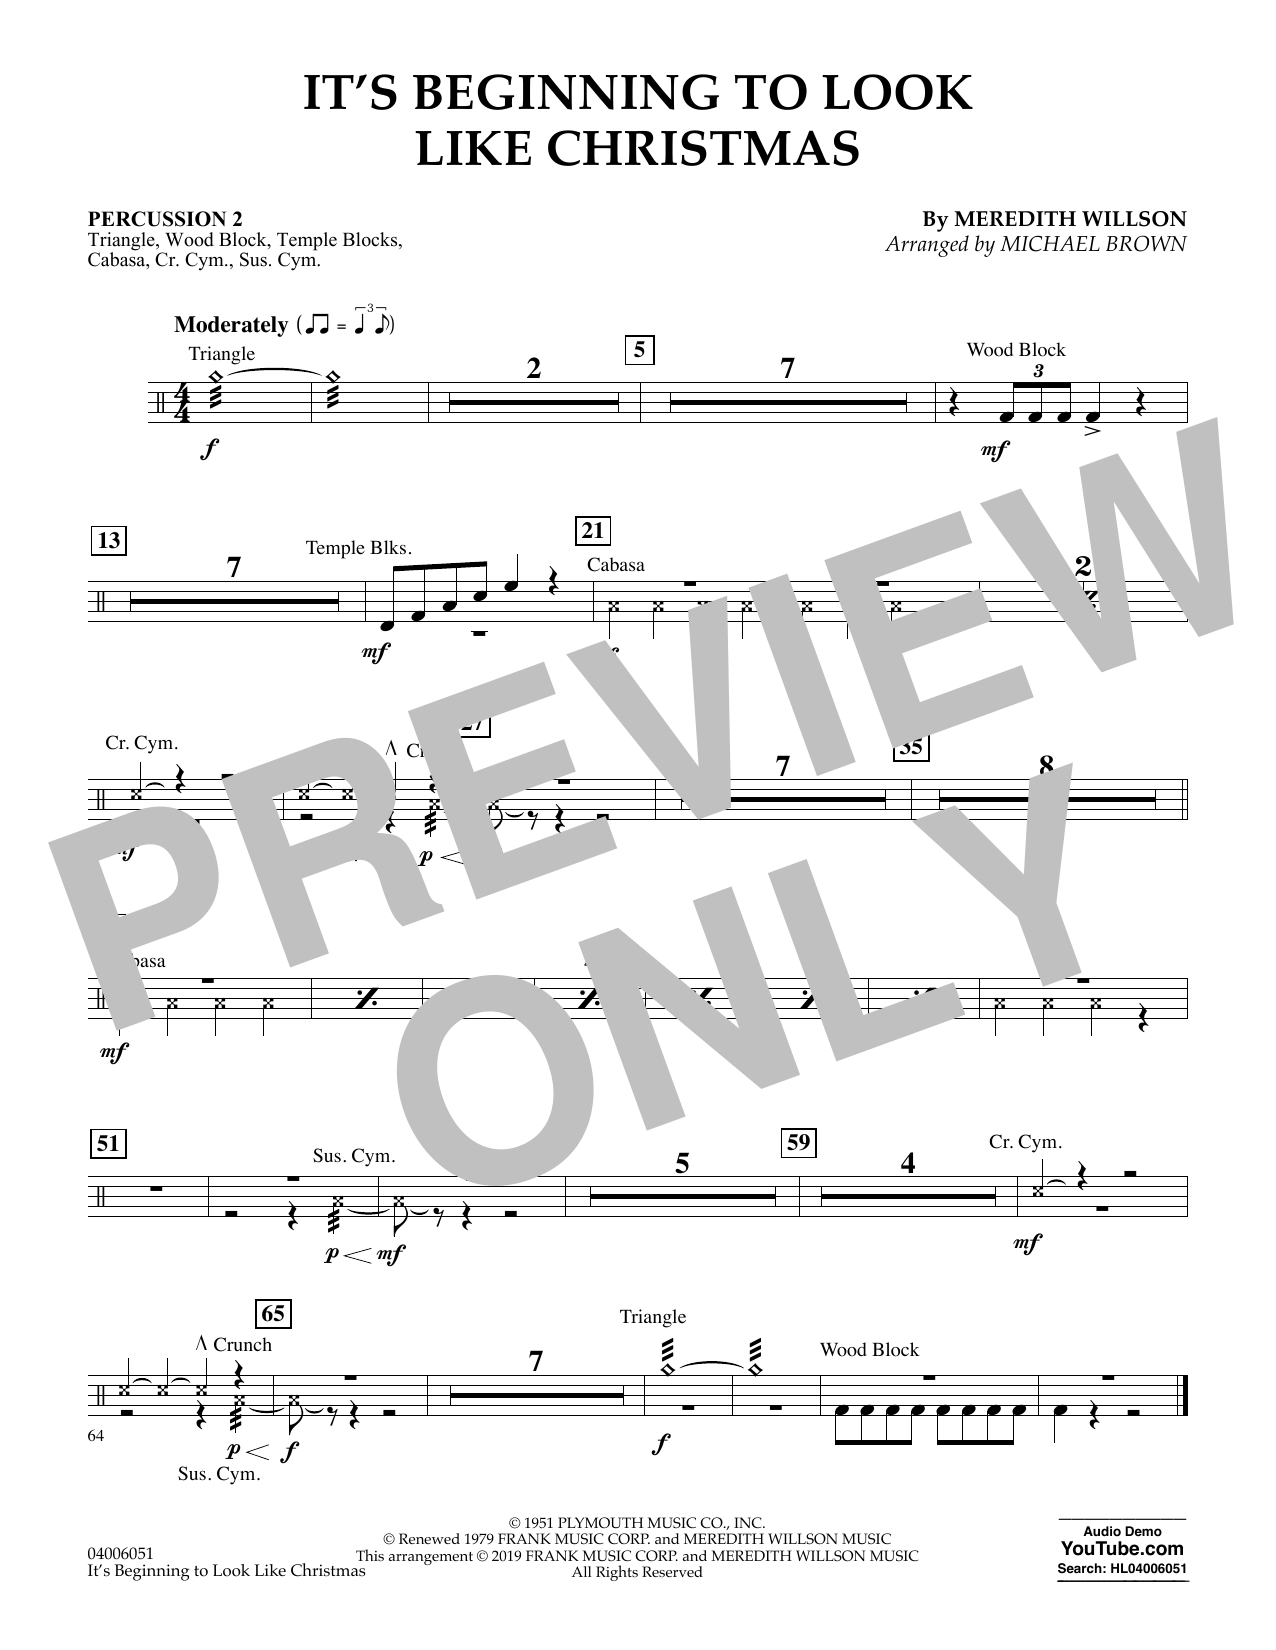 It's Beginning to Look Like Christmas (arr. Michael Brown) - Percussion 2 (Flex-Band)